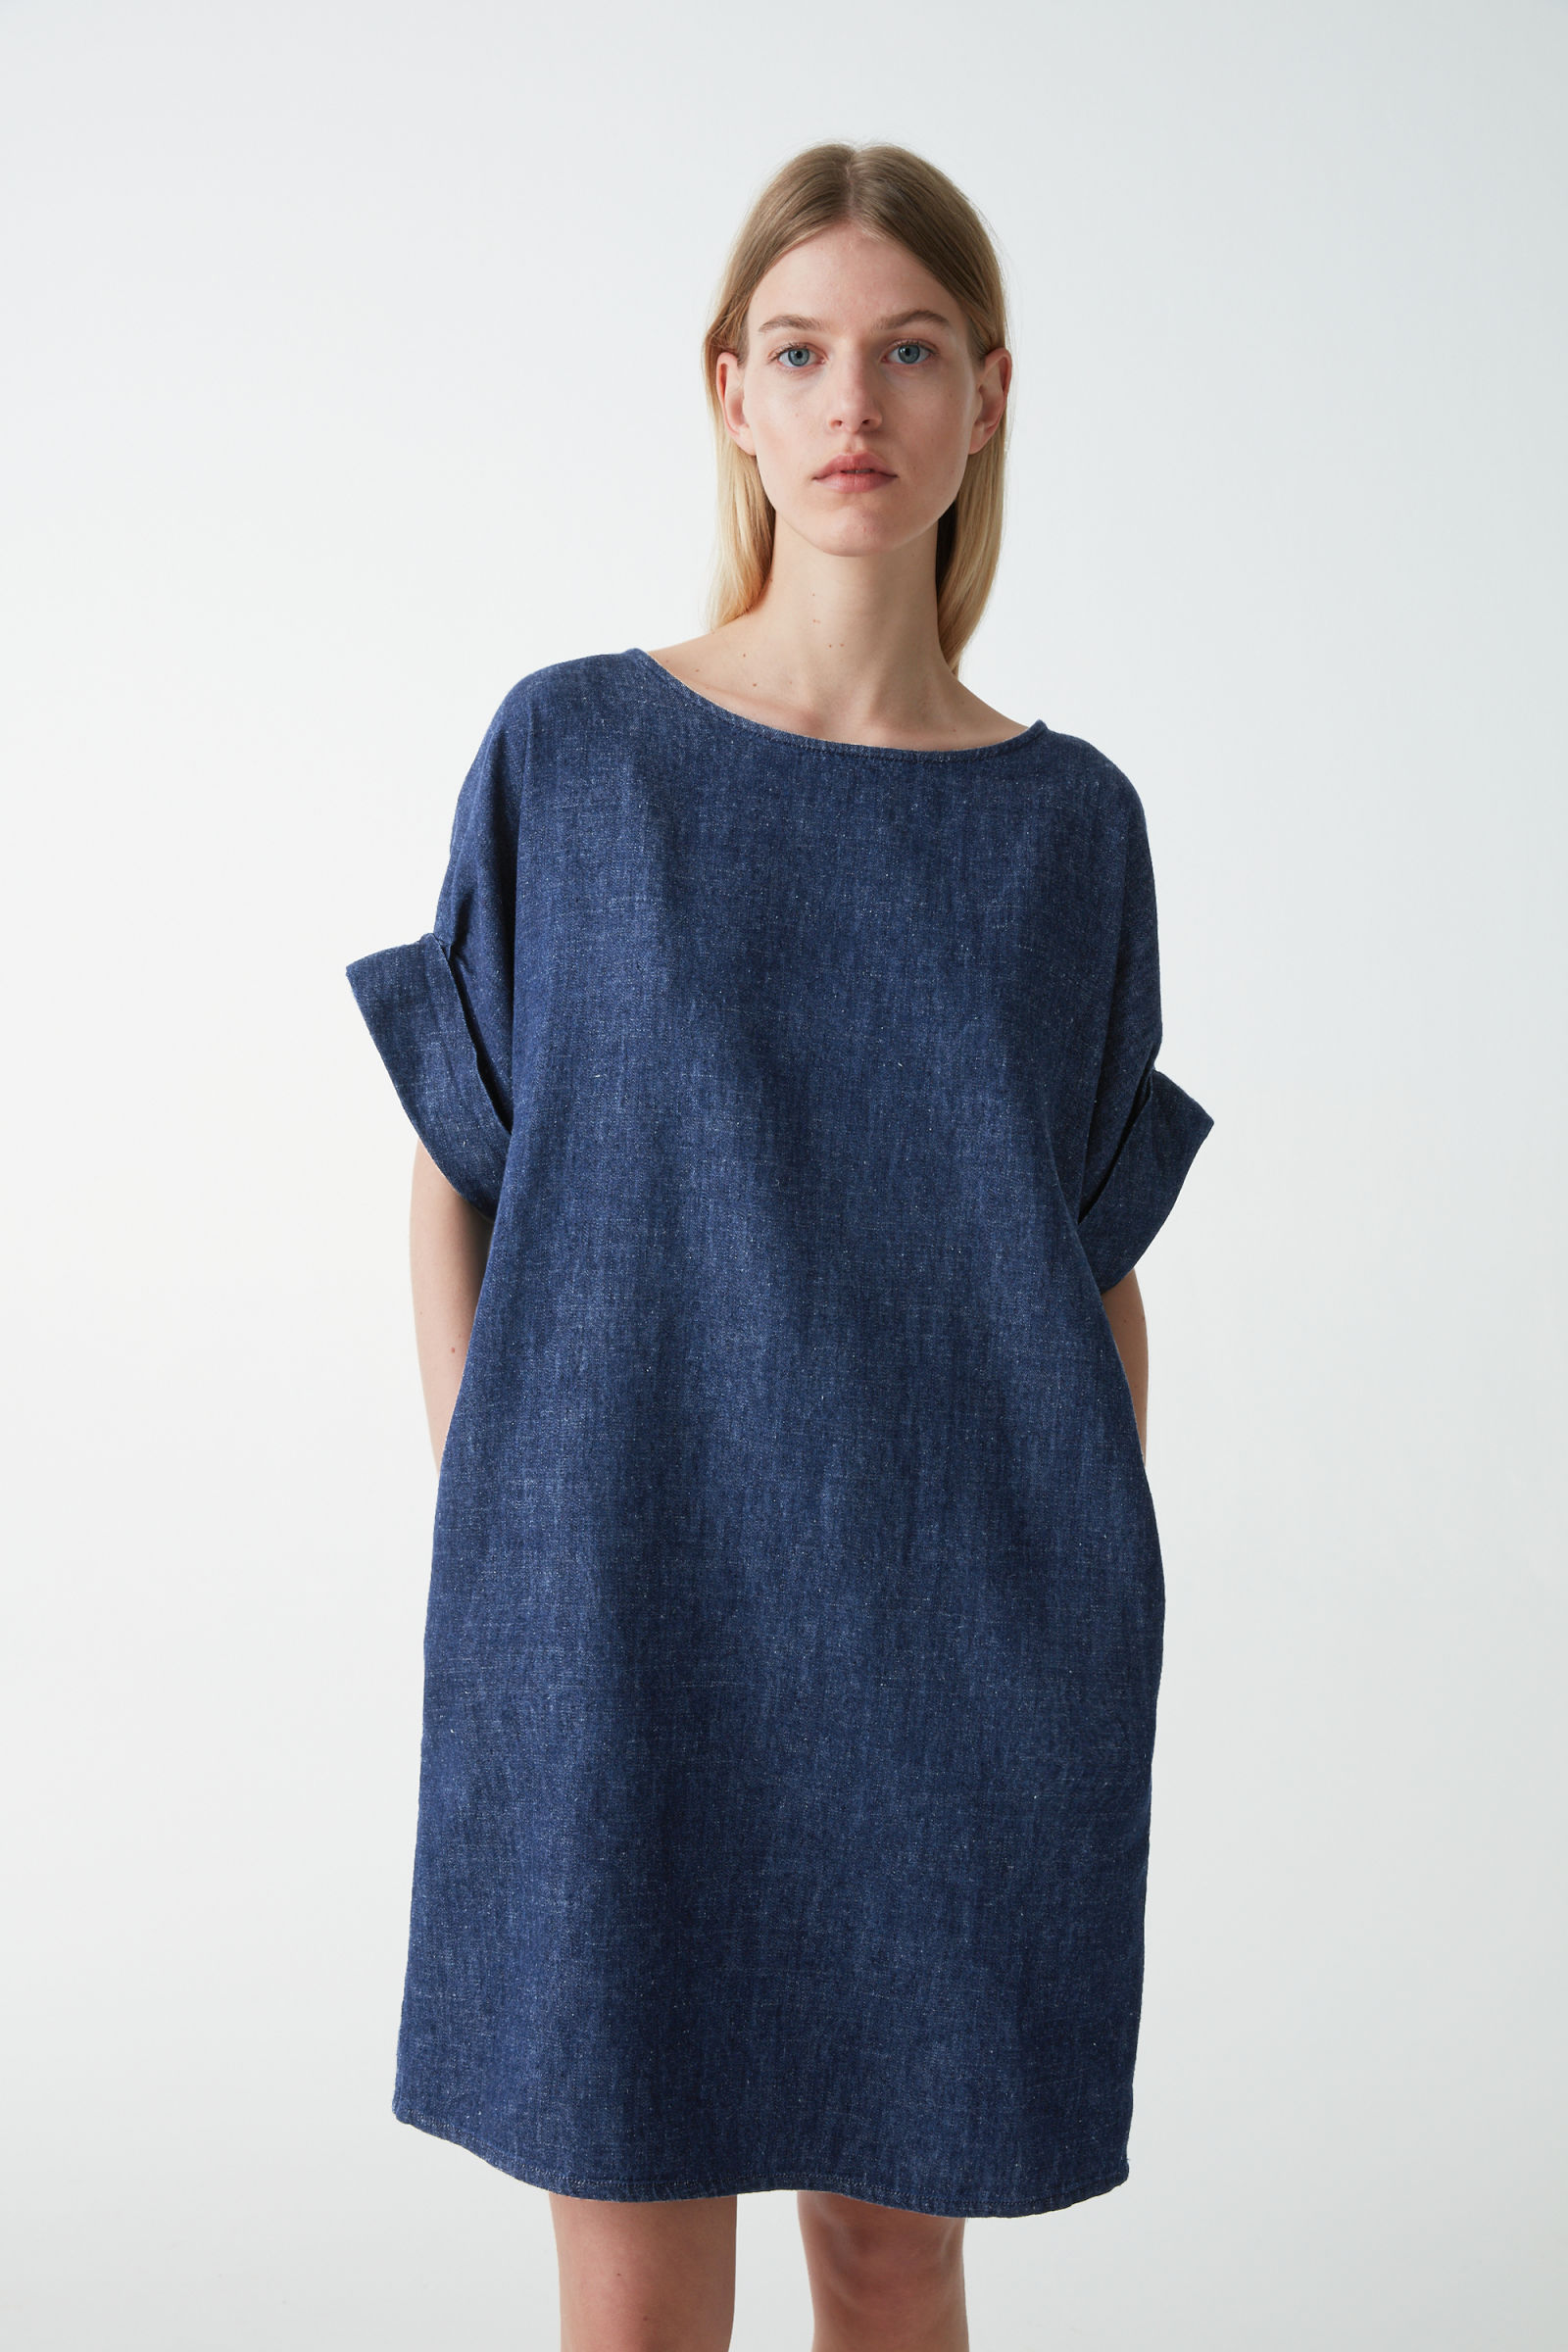 Cos Organic Cotton-Hemp Dress £48.30, was £69